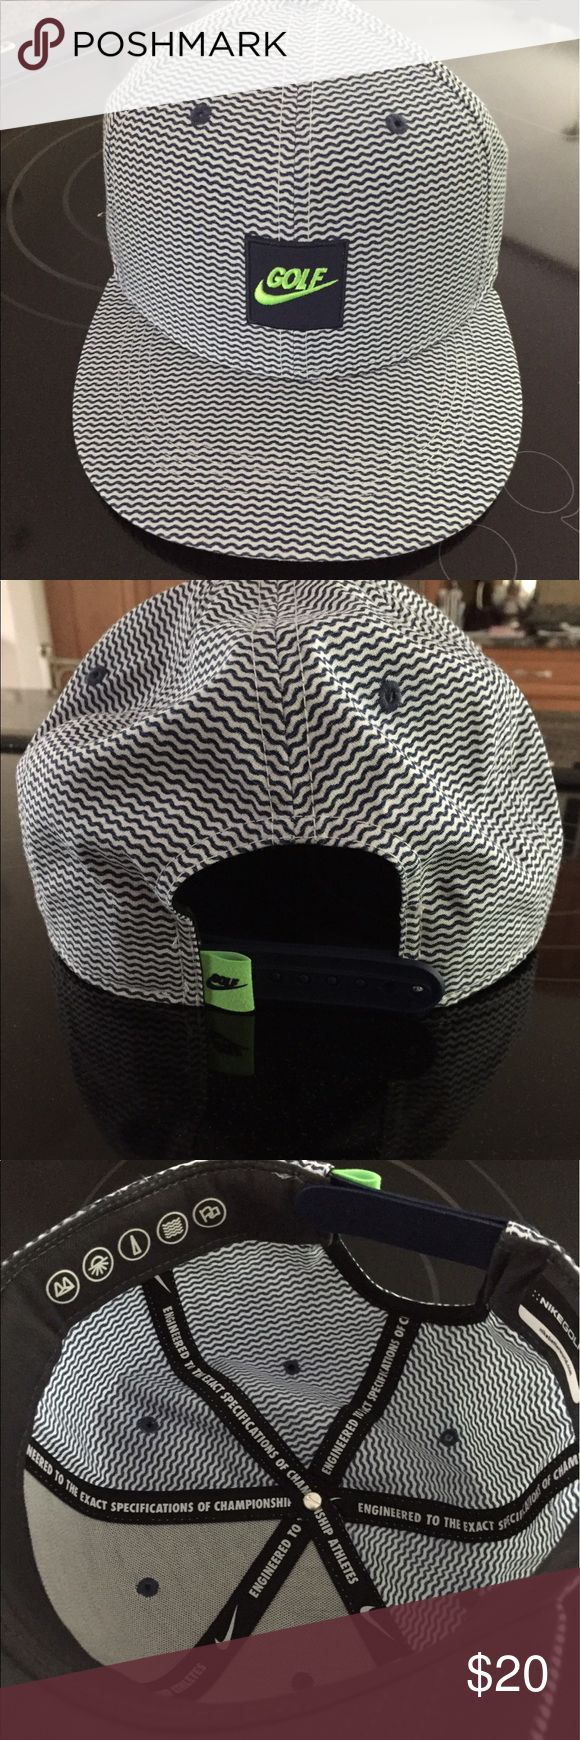 NWOT Men's Nike Golf Hat Brand new without tags, extremely comfortable, inside sweat band absorbs everything, unique design, no flaws! Nike Accessories Hats